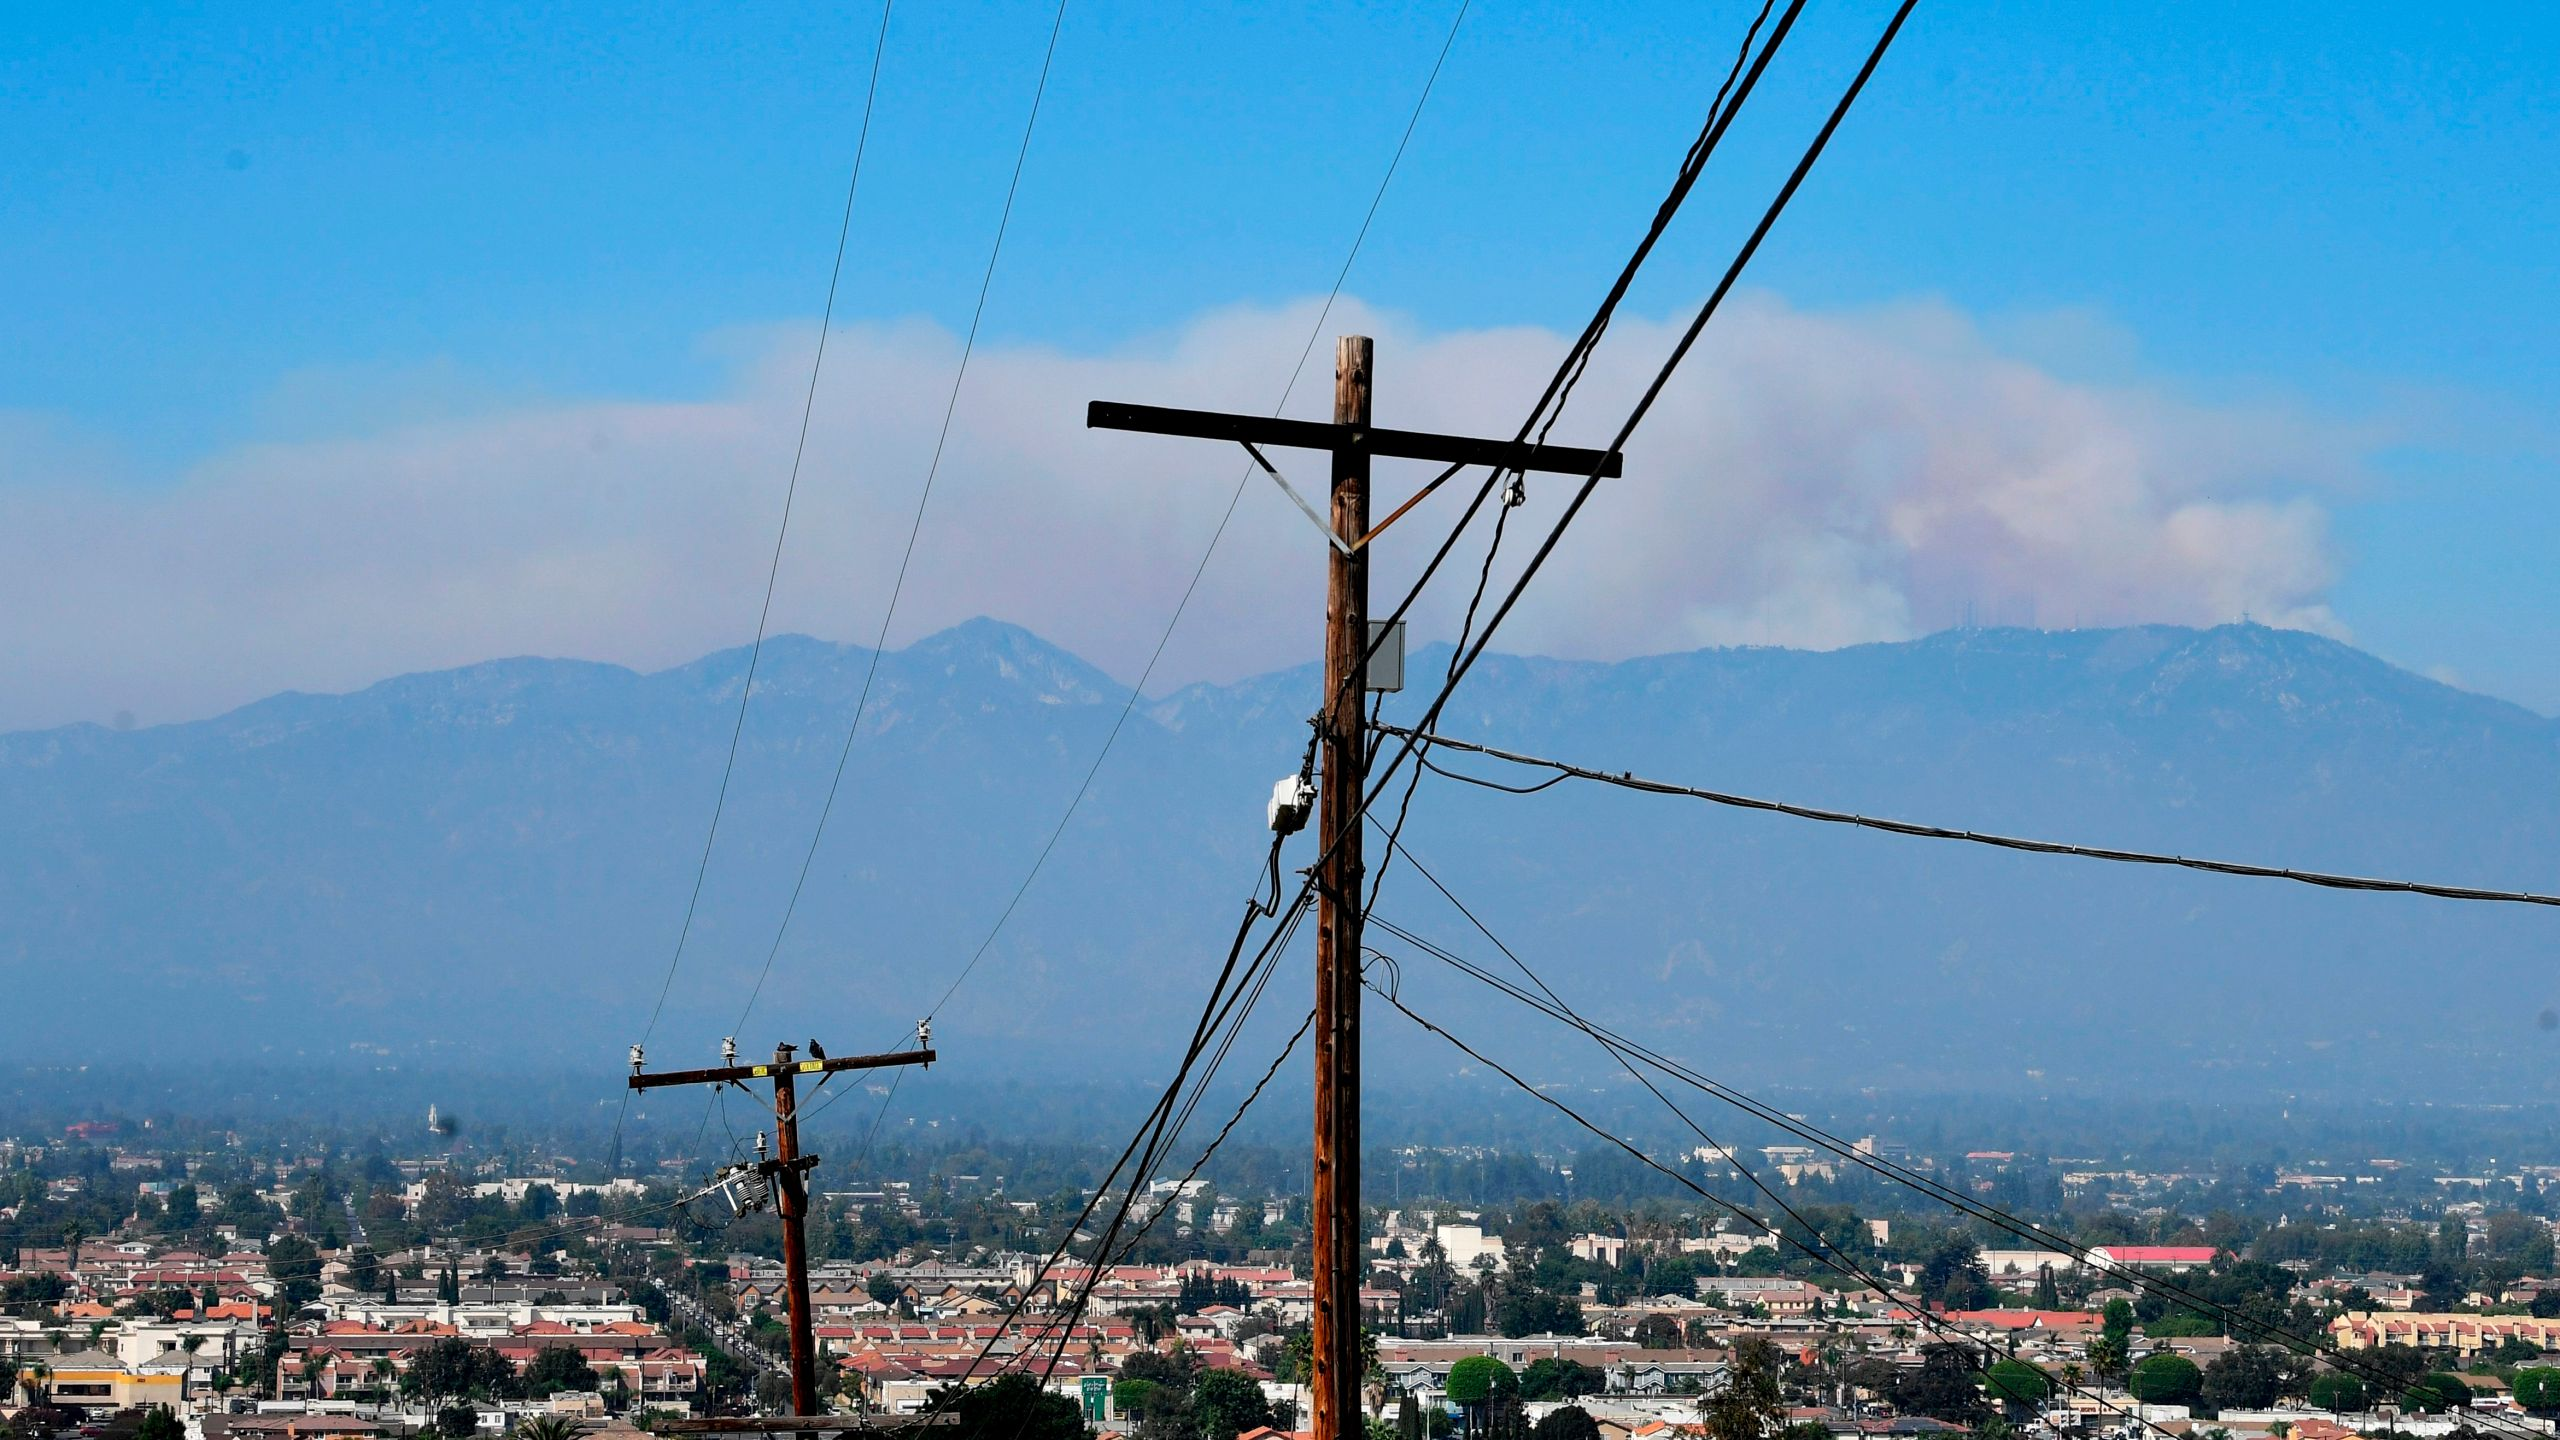 A huge plume of smoke from the Bobcat Fire rises from the Angeles National Forest over the San Gabriel Mountains as seen from Monterey Park, California on September 21, 2020. (Photo by FREDERIC J. BROWN/AFP via Getty Images)